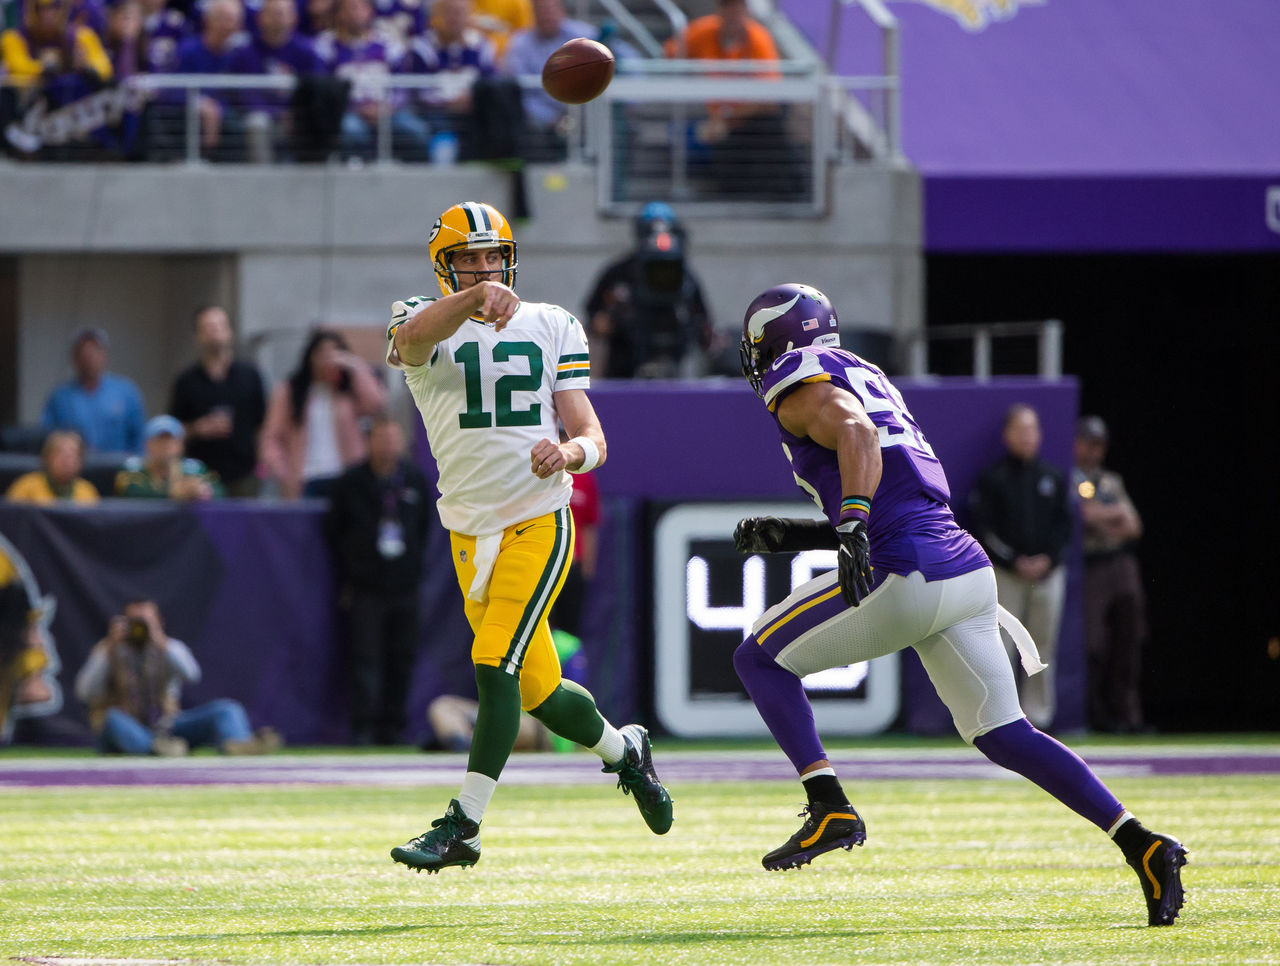 Cropped 2017 10 15t175013z 941964635 nocid rtrmadp 3 nfl green bay packers at minnesota vikings